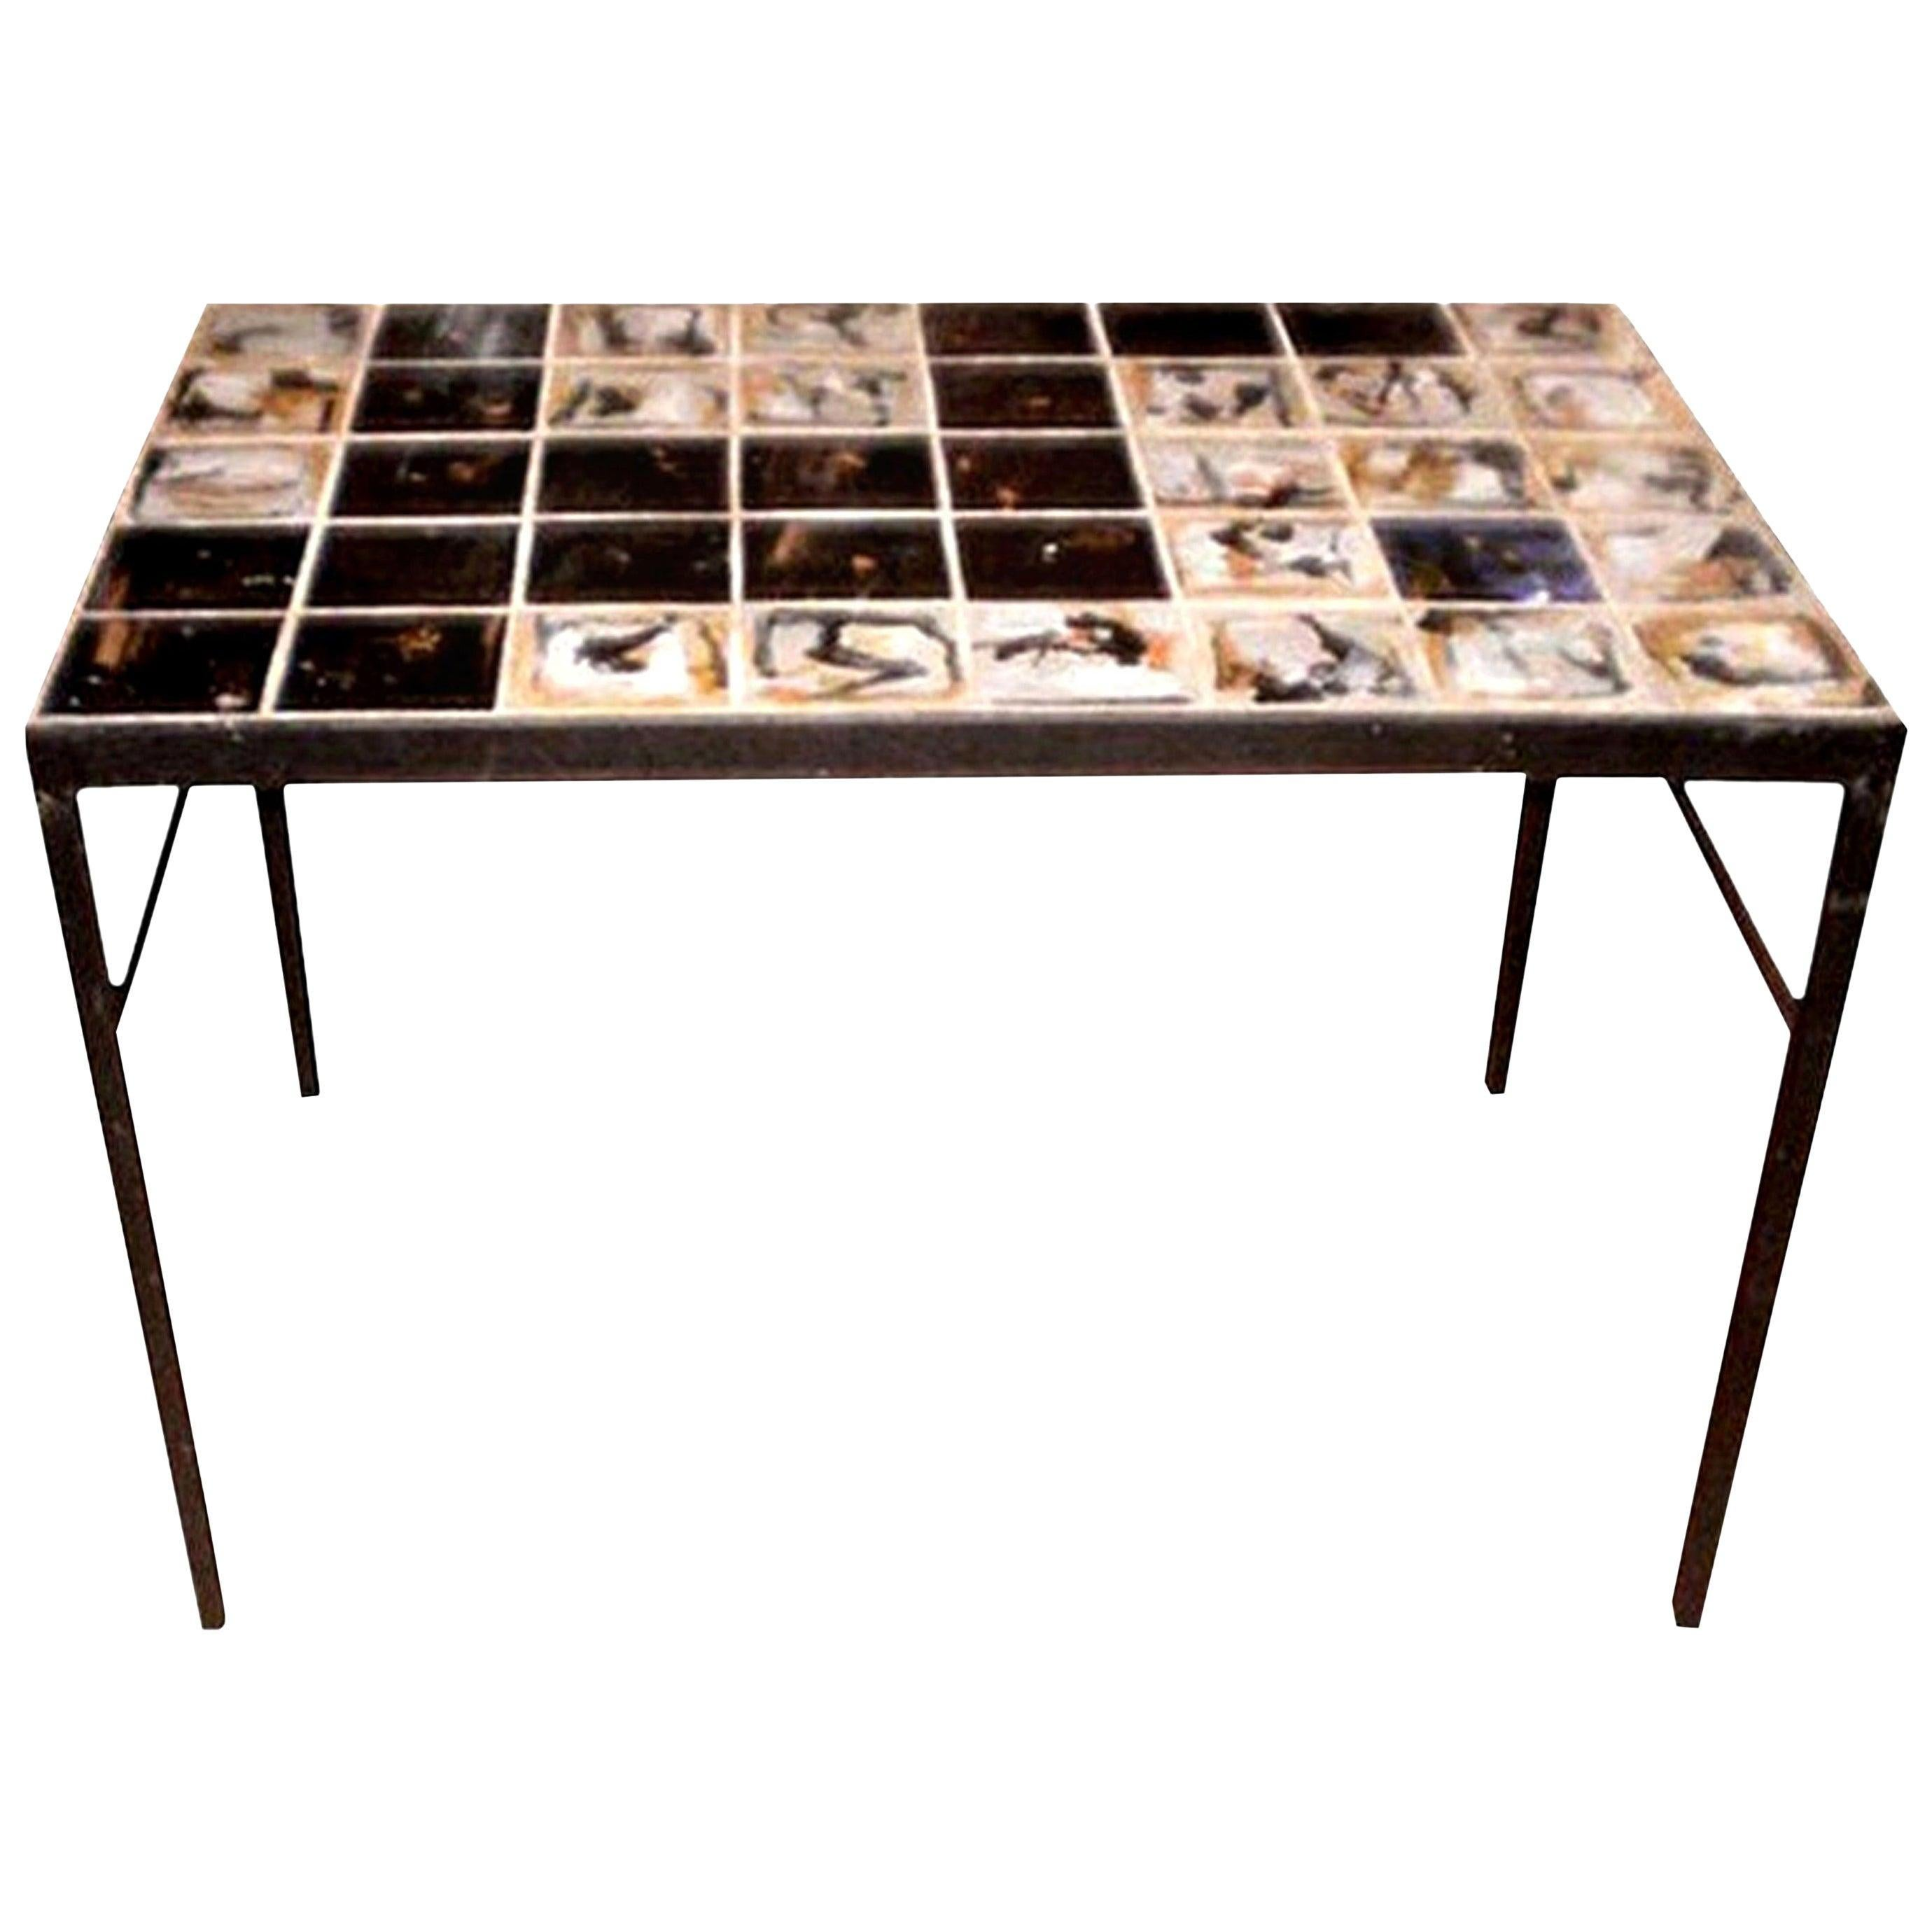 Mid-Century Modern Tile Topped Cocktail Table, Roger Capron Style